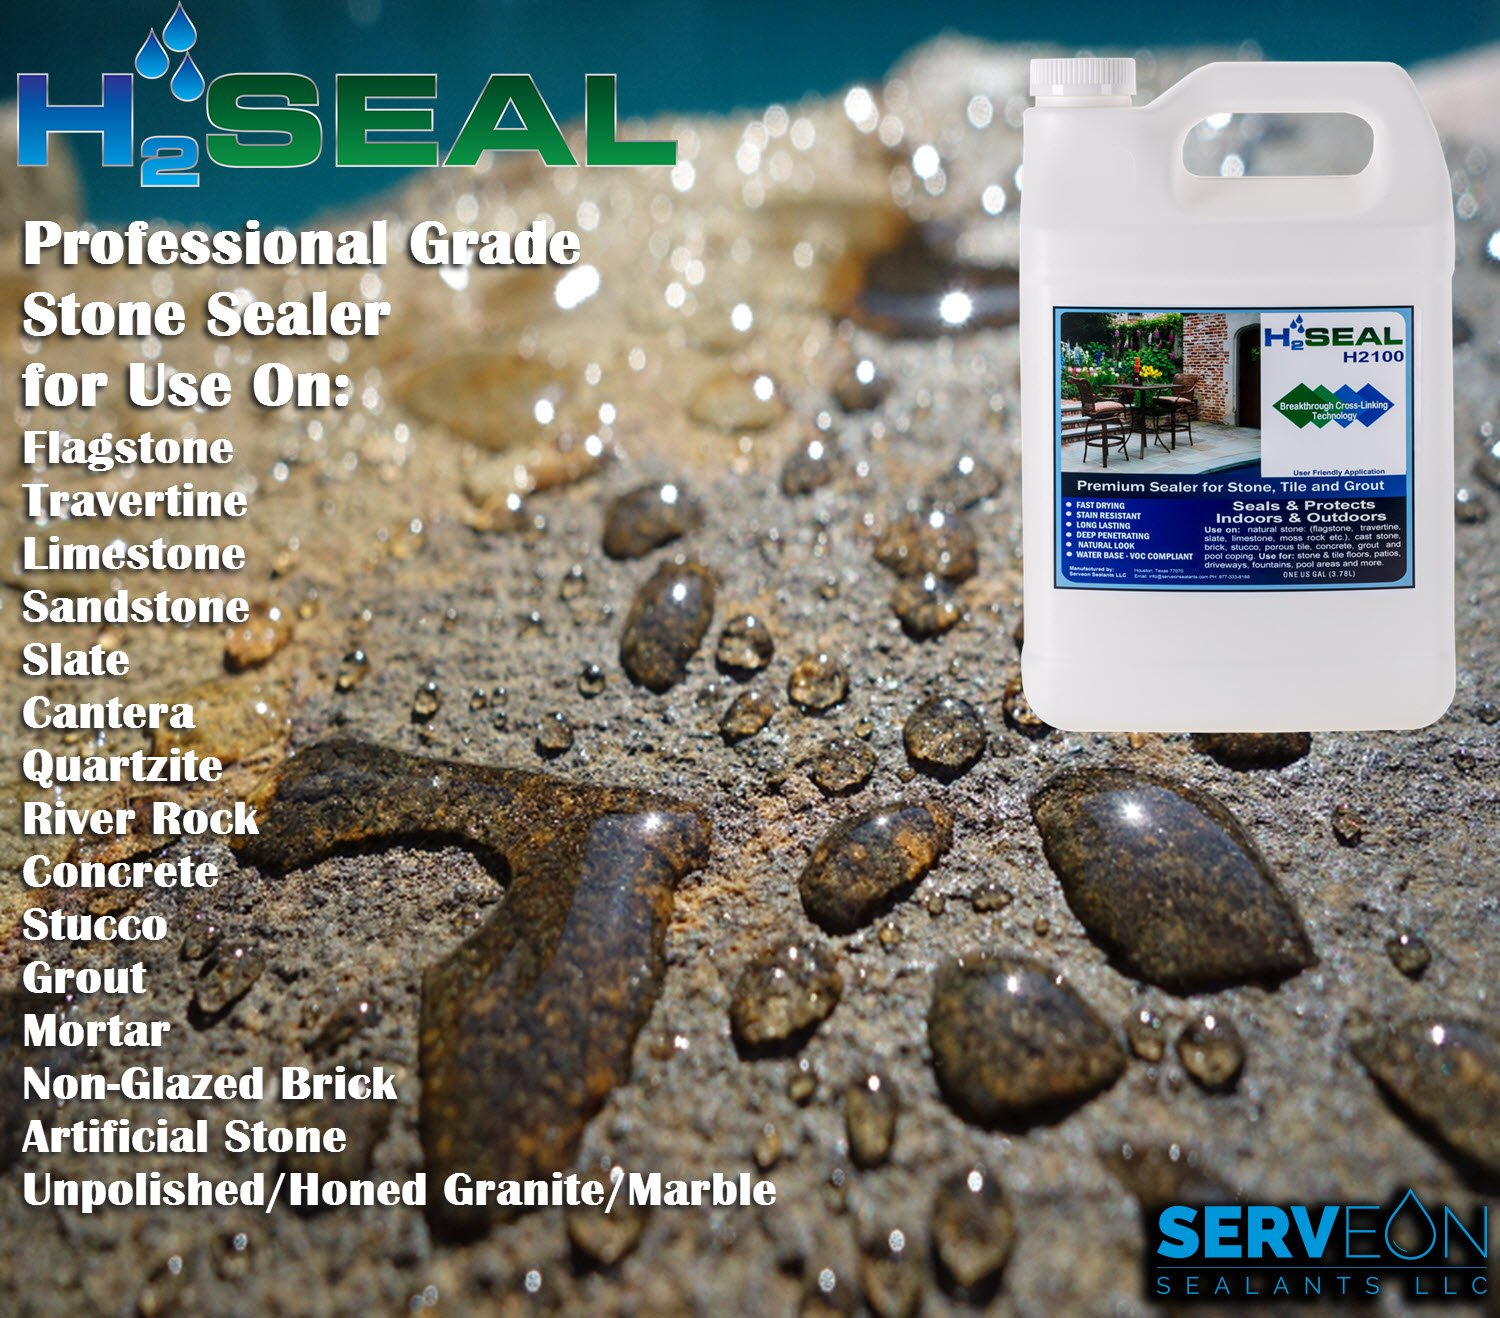 Serveon sealants h2seal h2100 stone sealer professional grade serveon sealants h2seal h2100 stone sealer professional grade for natural stone grout brick tile and artificial stone 1 gallon stone sealer dailygadgetfo Image collections